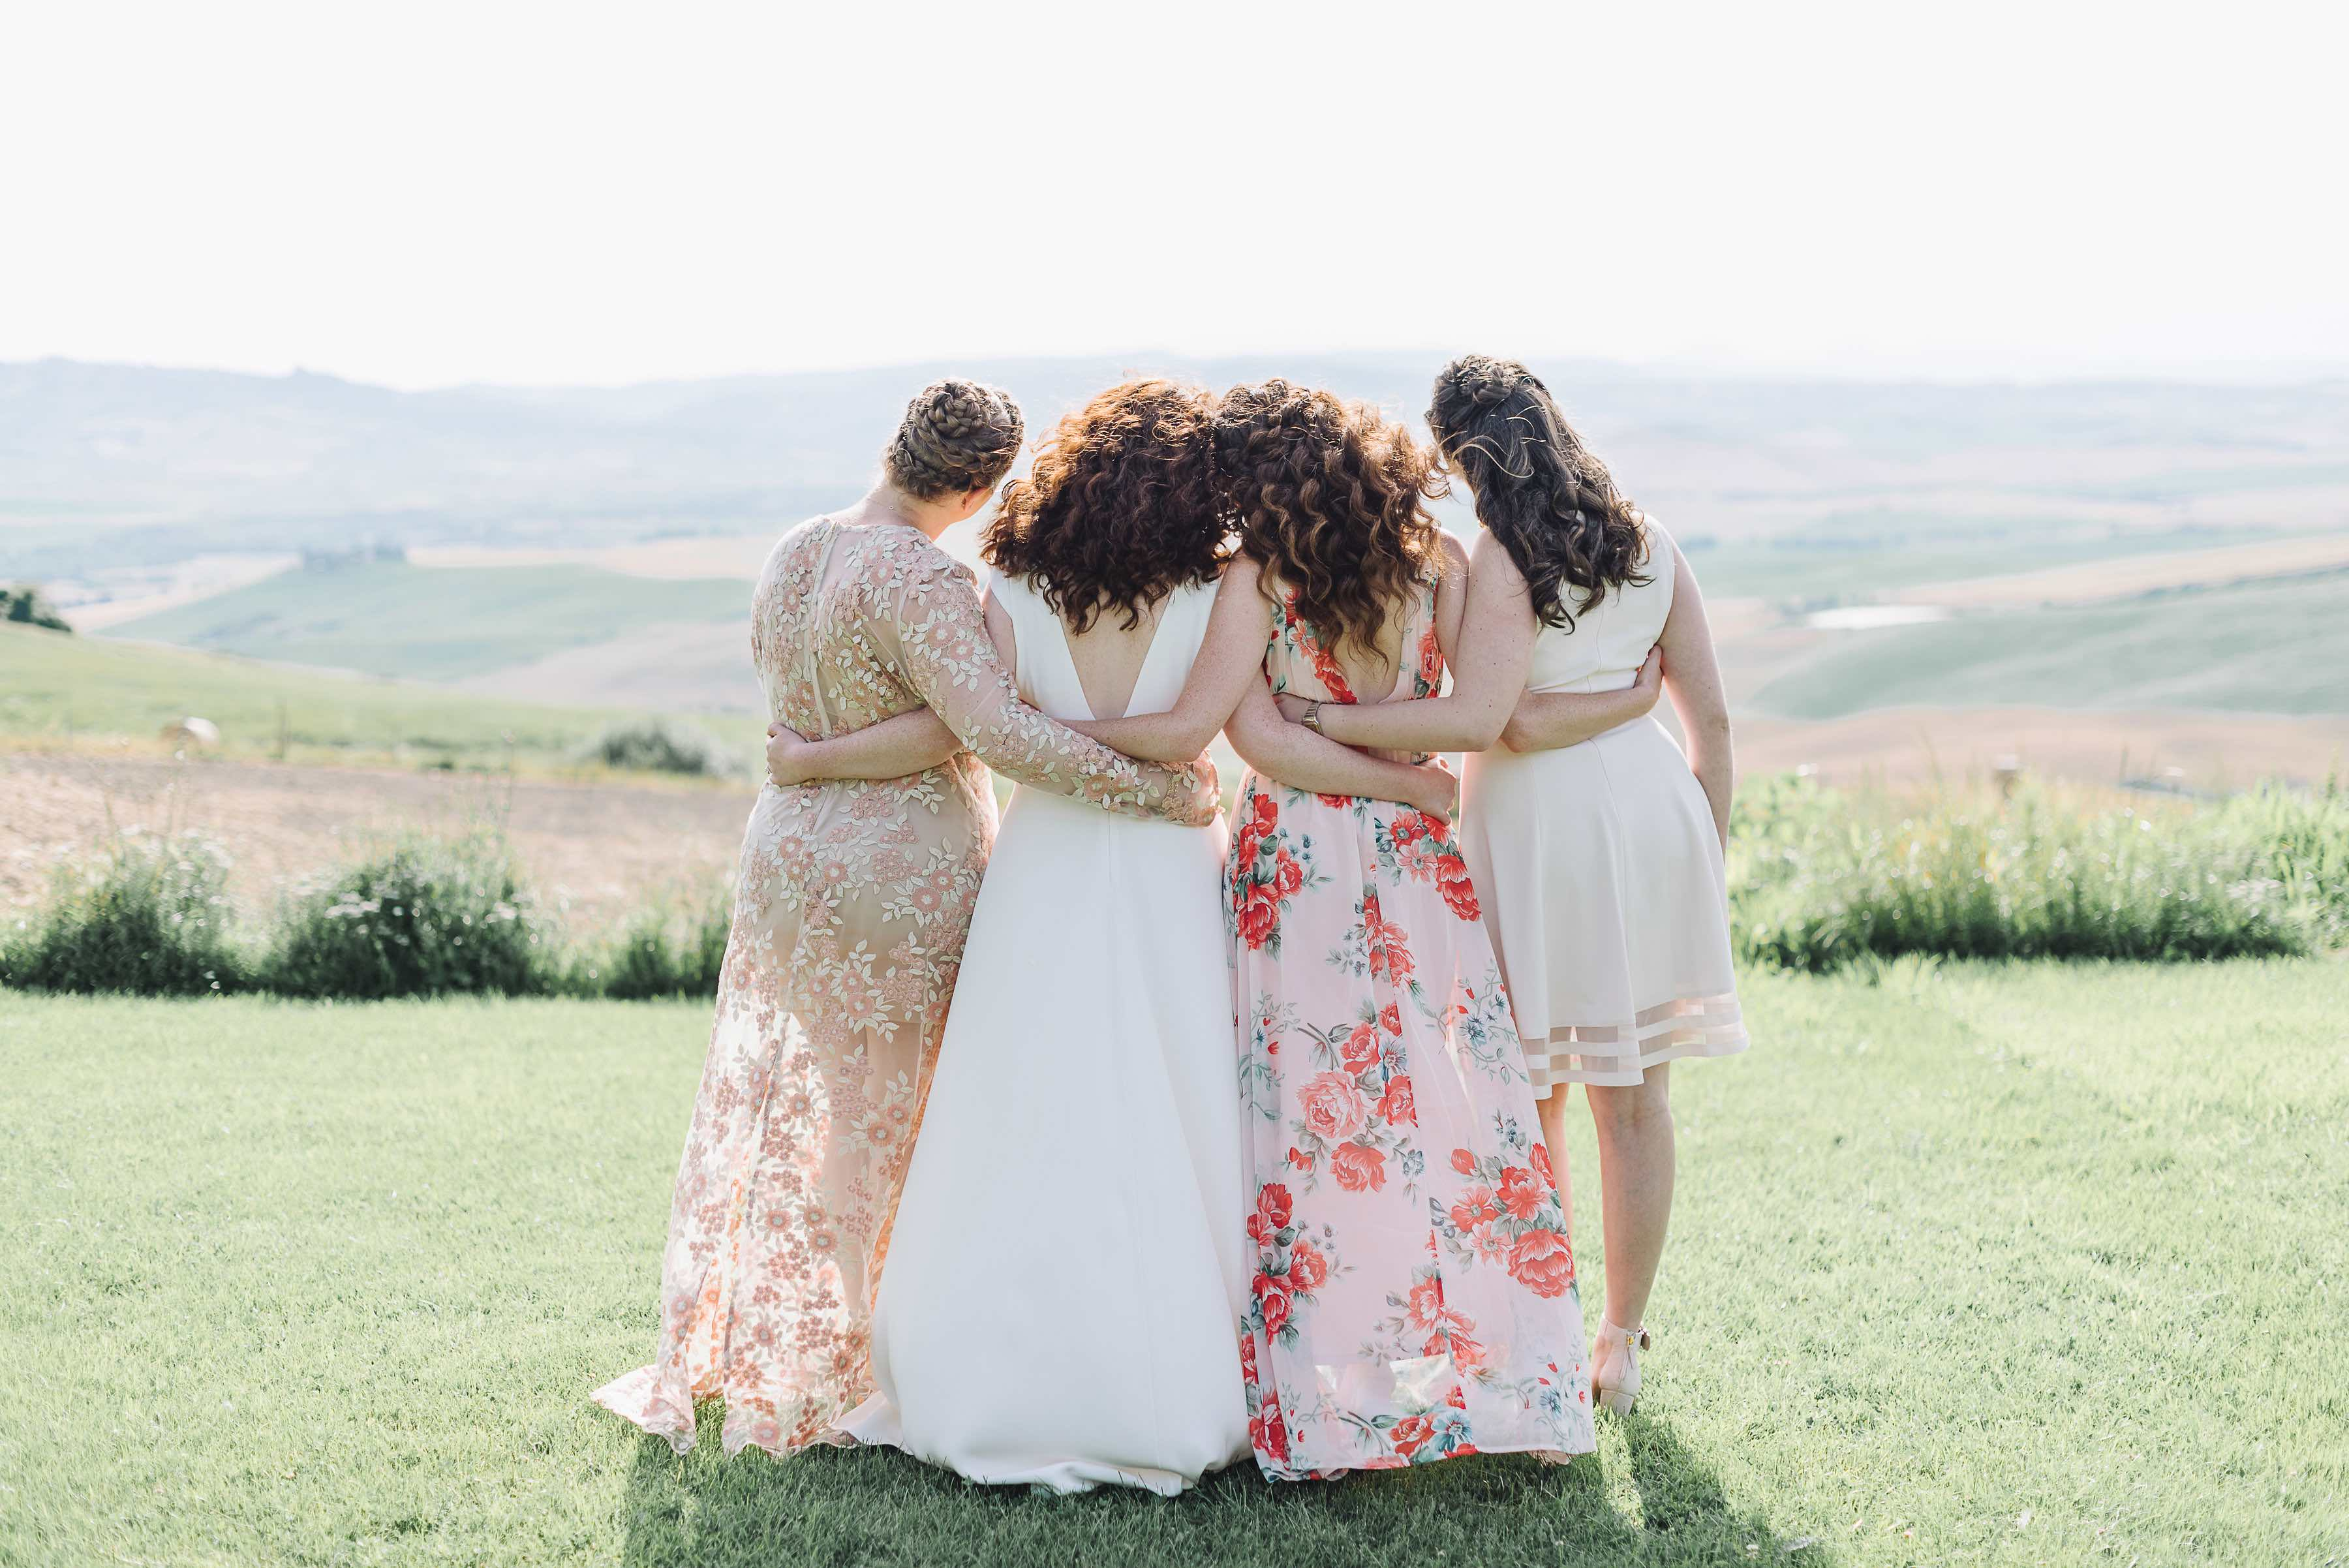 The bride and her bridesmaids arm in arm